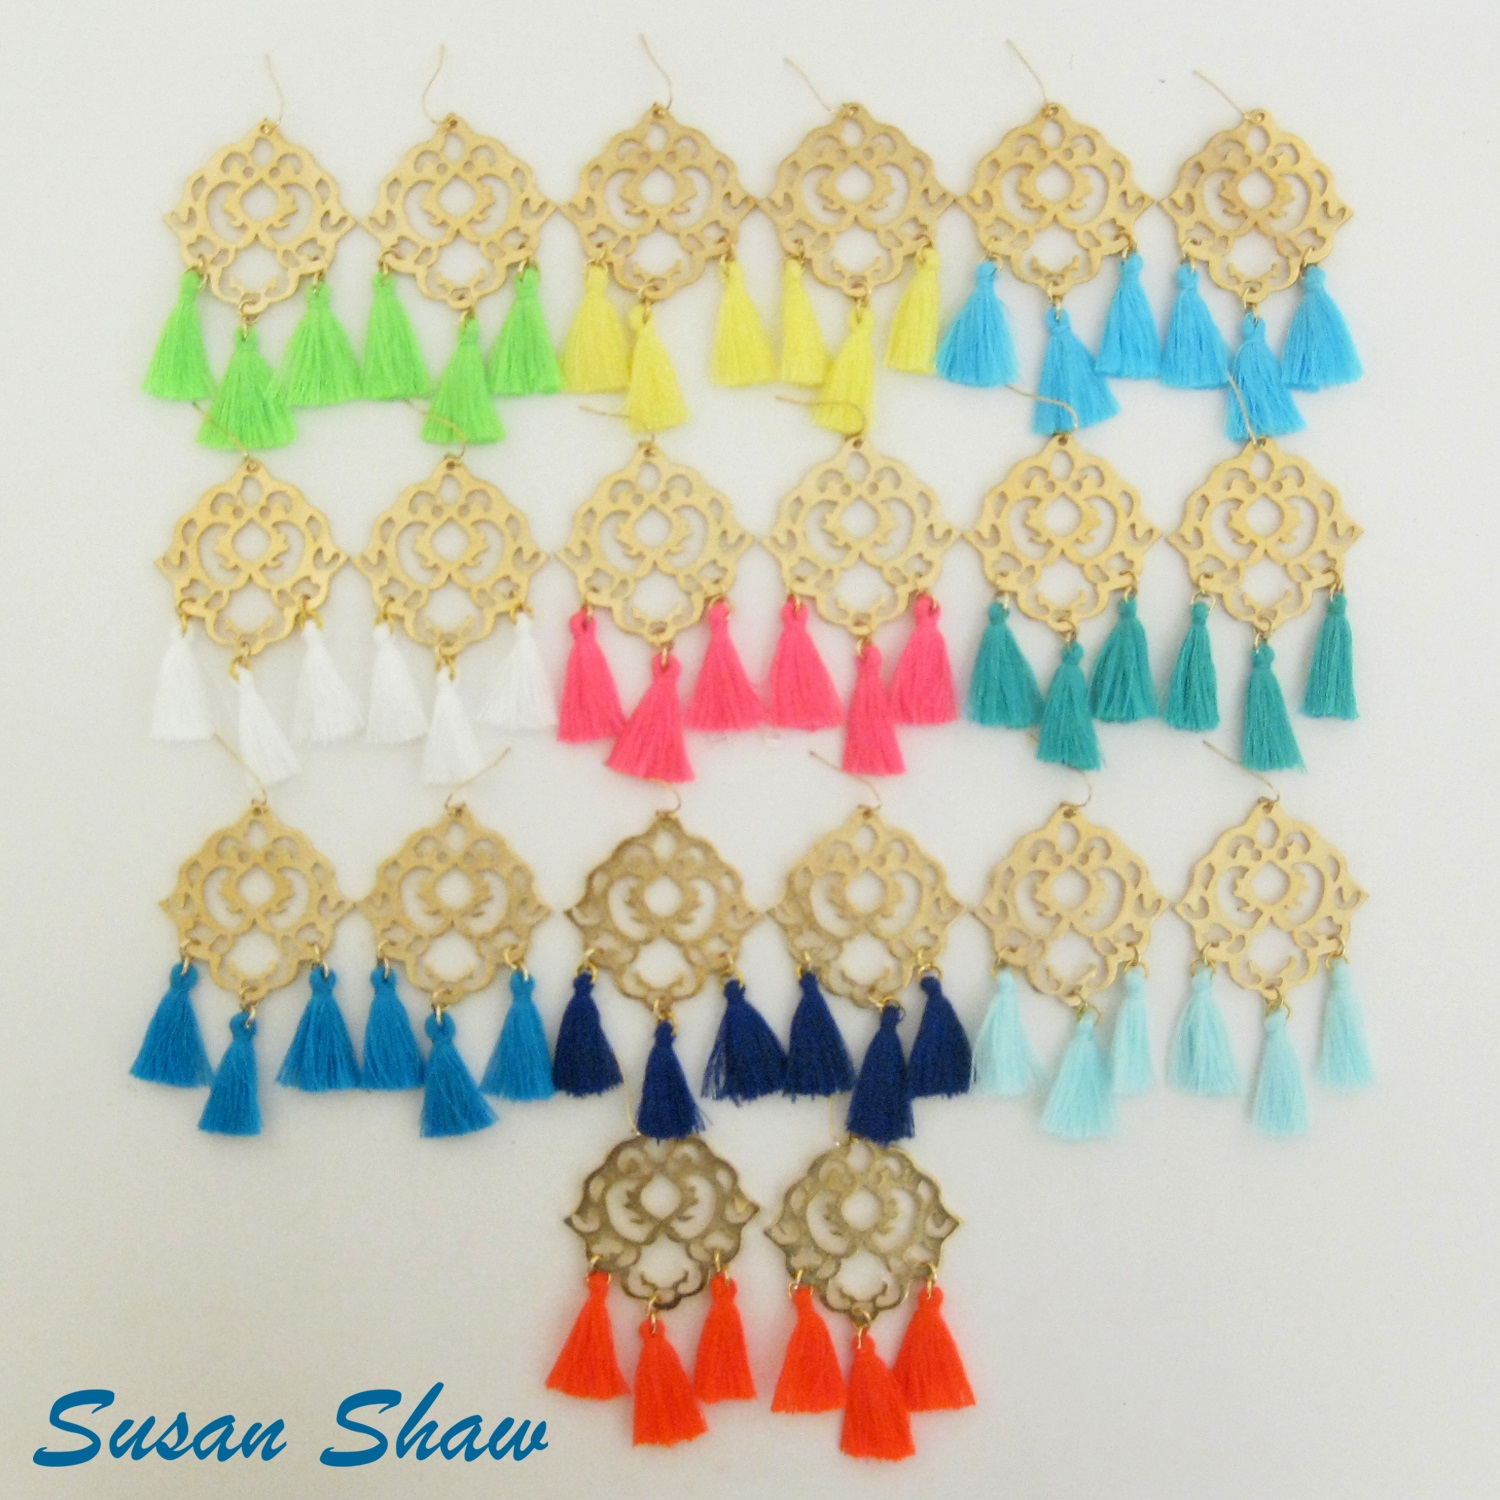 SUSAN SHAW GOLD FILIGREE TASSEL EARRINGS